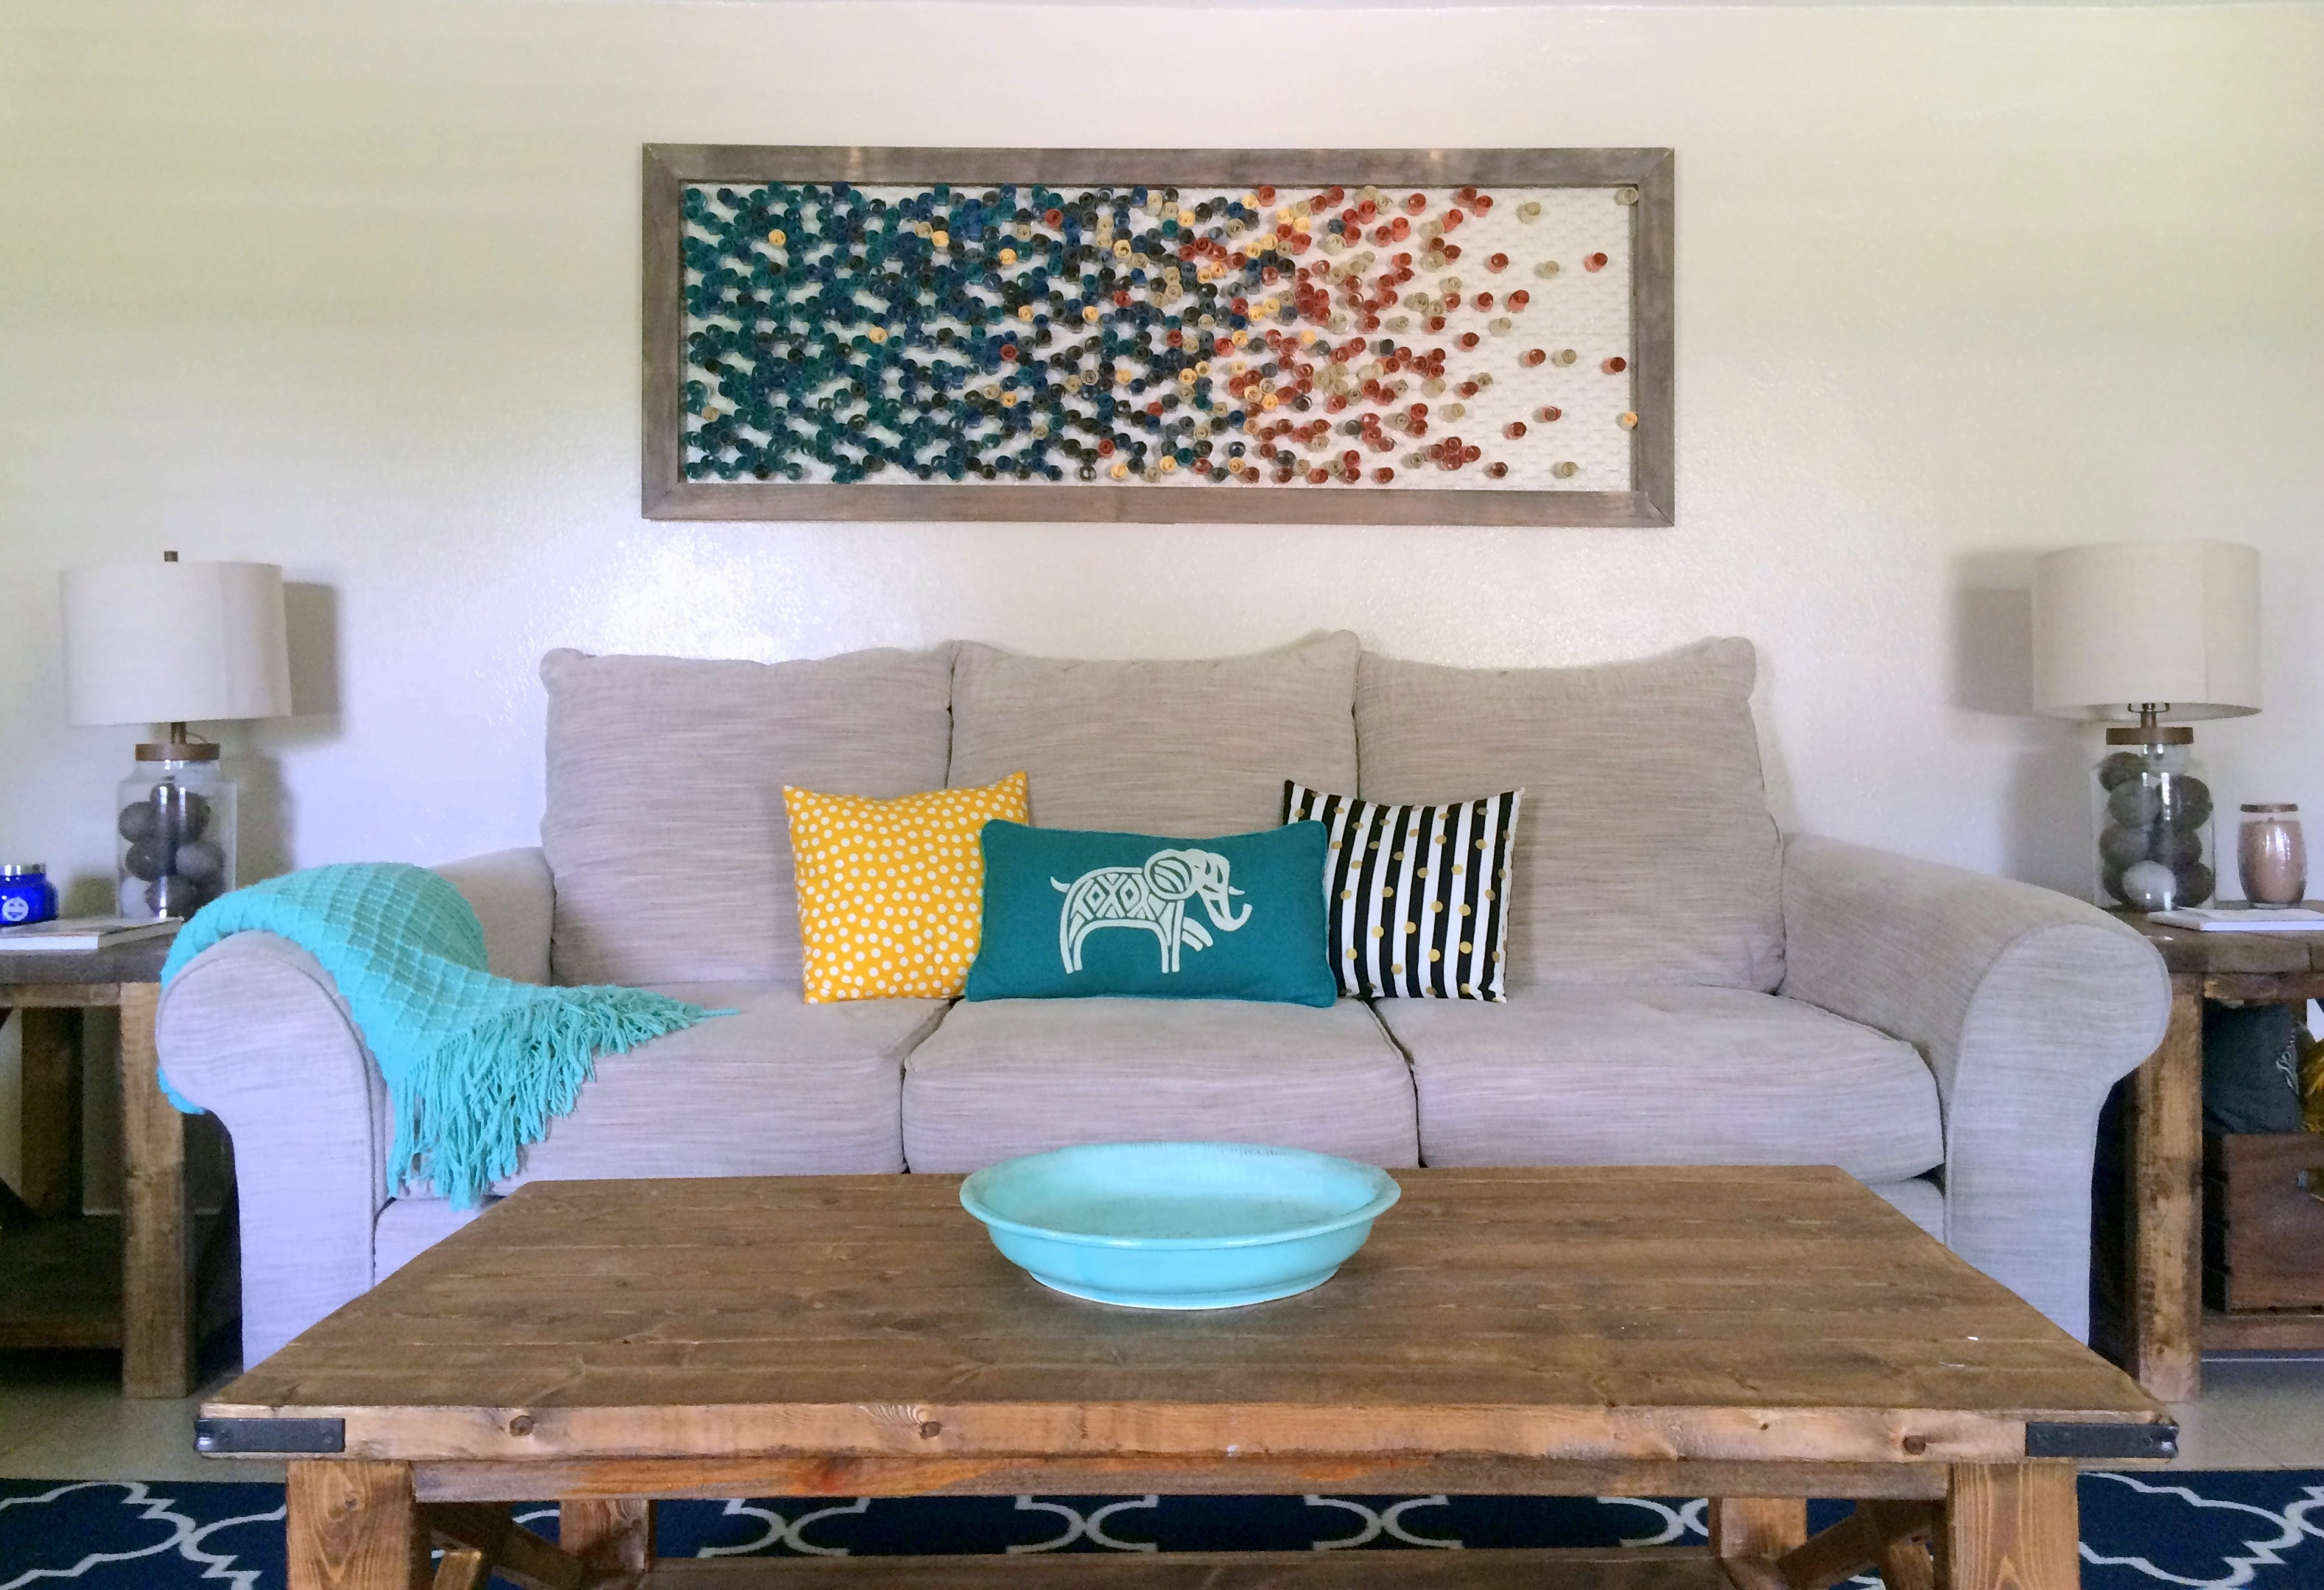 DIY // Framed Paper Wall Art - Within the Grove